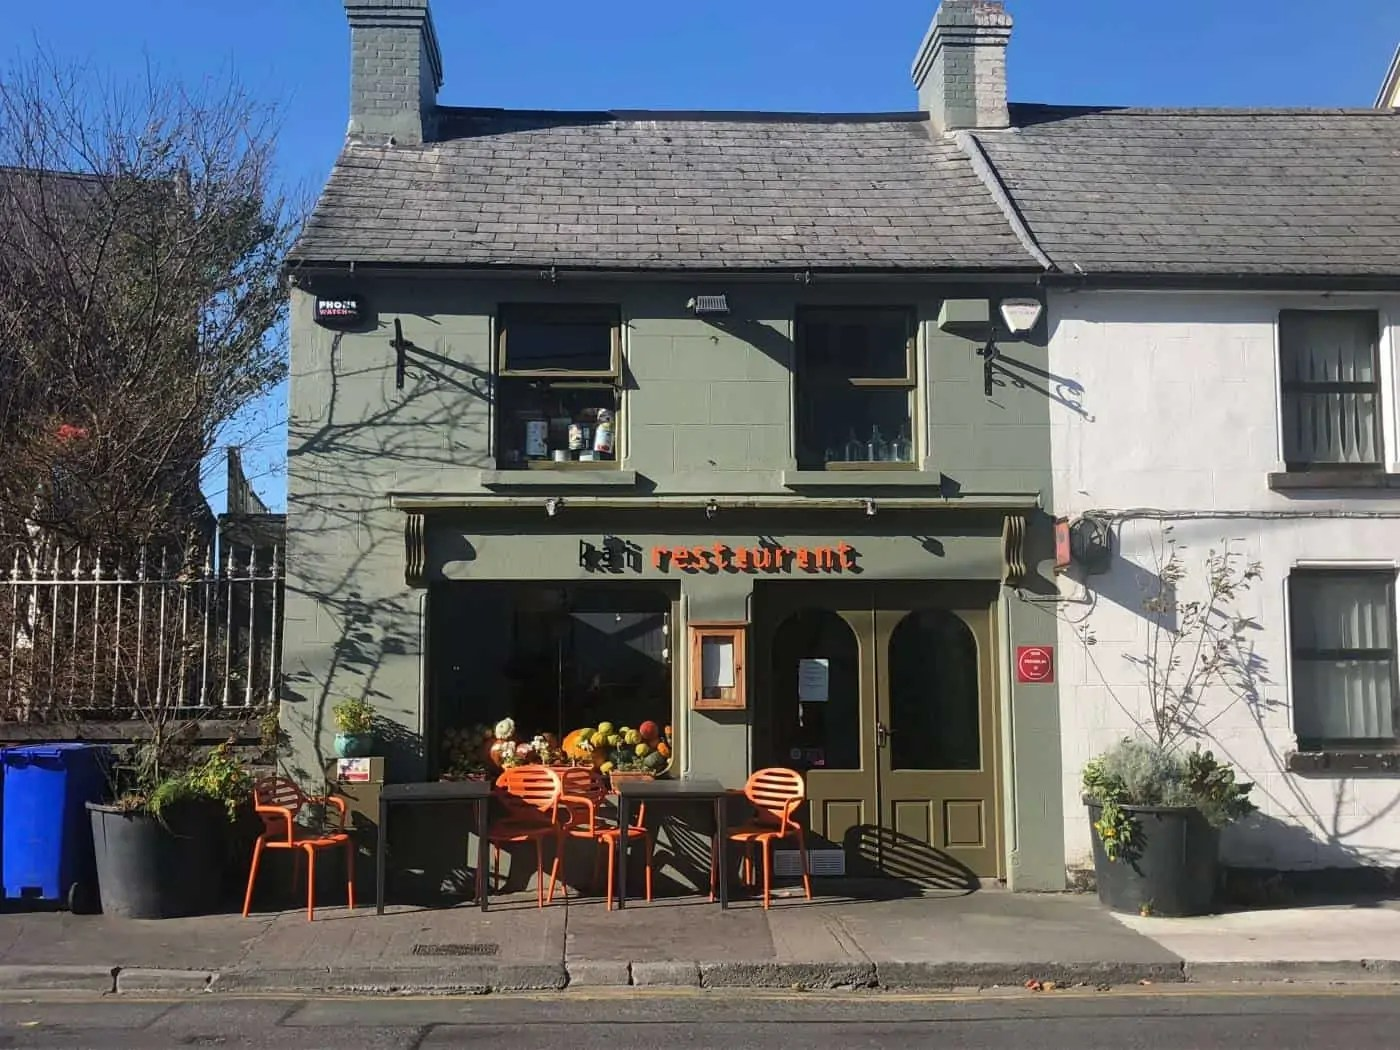 The Best, and Mostly Free, Things to Do in Galway